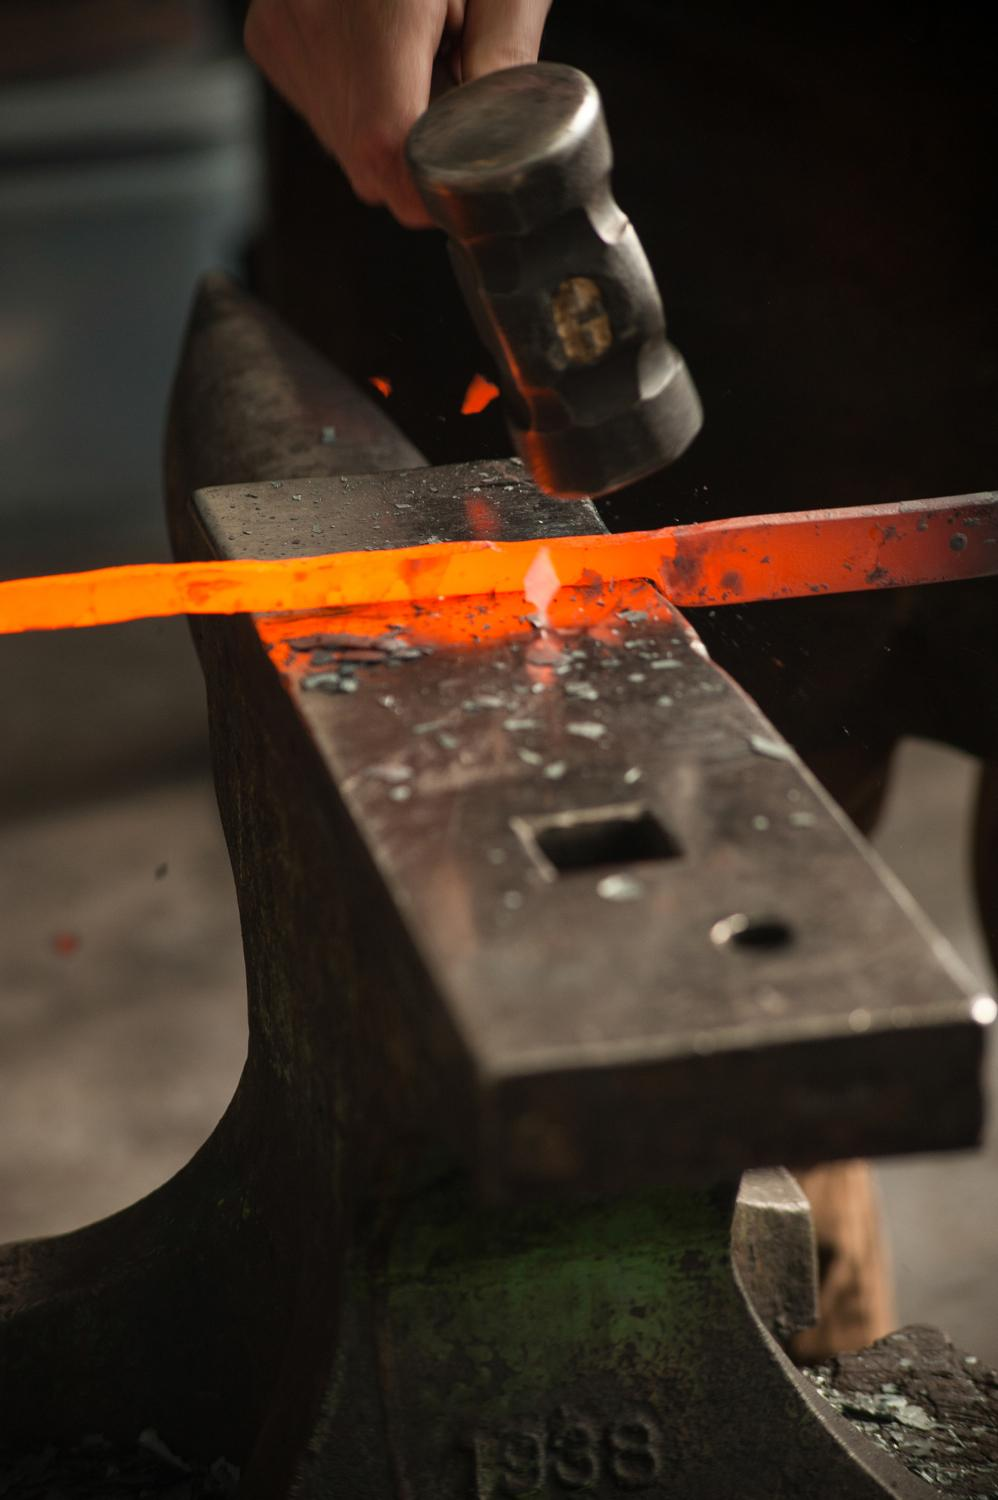 A bar of steel, blazing hot from the forge / Image: Melissa Doss Sliney